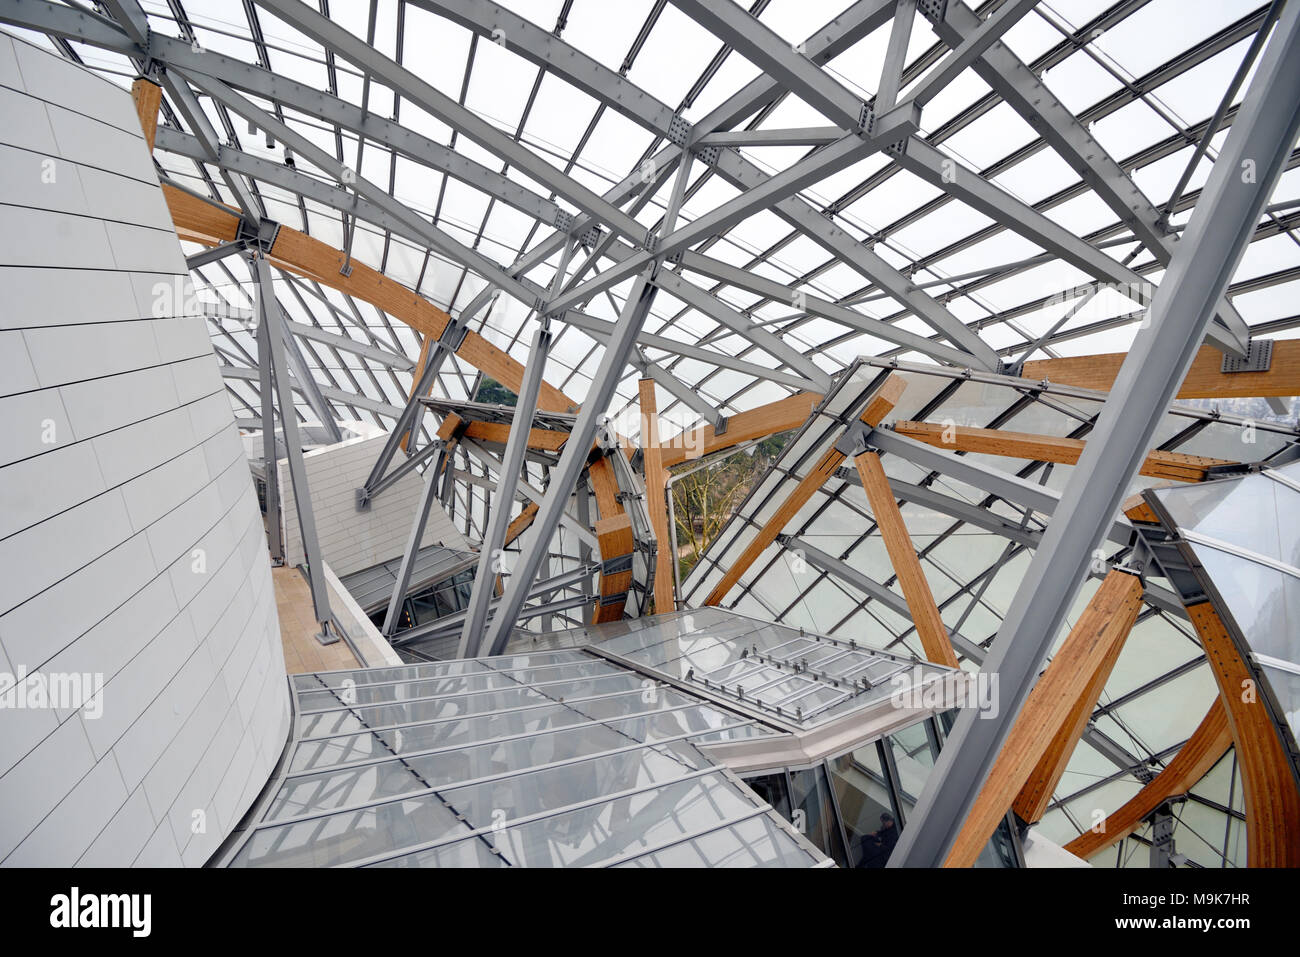 Roof Structure of the Louis Vuitton Foundation Art Museum & Cultural Centre (2006-14) designed by Frank Gehry, Paris, France - Stock Image